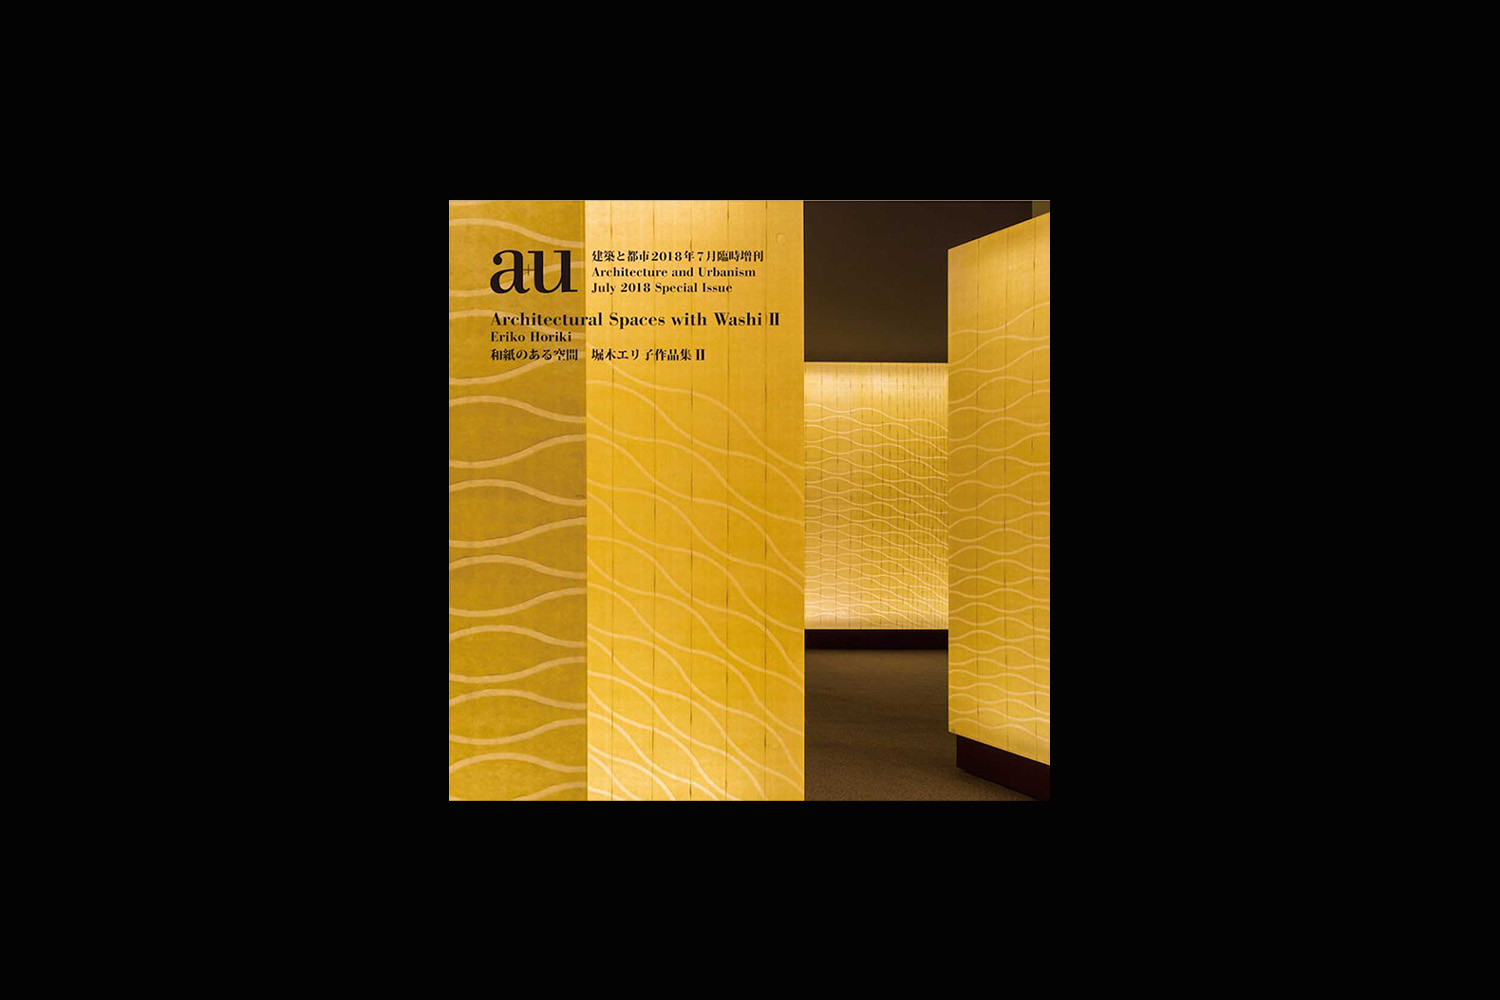 """Architecture and Urbanism July 2018 Special Issue: """"Architectural Spaces with Washi II – Eriko Horiki"""" A+U Publishing Co., Ltd./2018"""